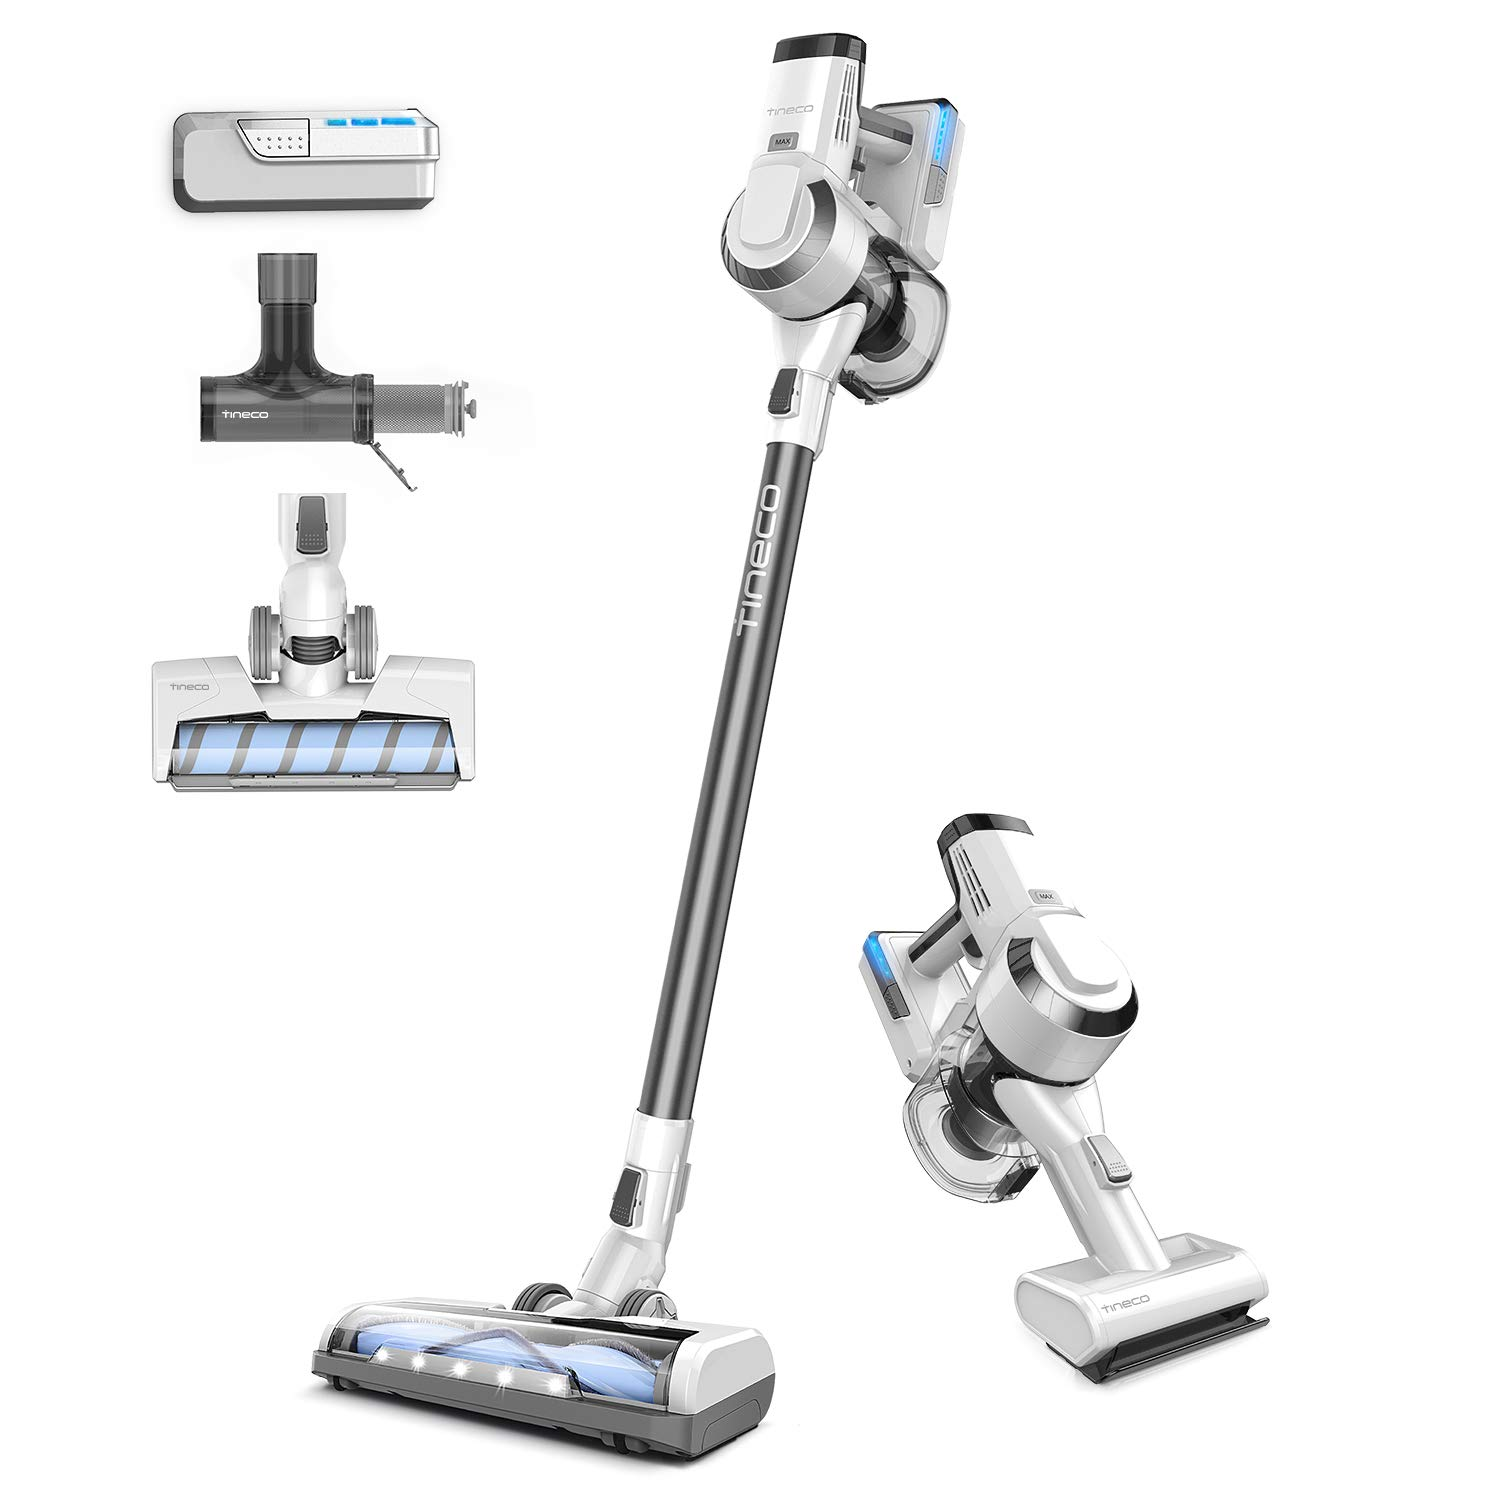 Tineco A10 Master Cordless Vacuum 2-in-1 Handheld Stick Vacuum 350W Rating Power 2 LED Power Brush for Hardwood Floor Carpet Pet Hair Deep Clean with 2pcs Rechargeable Batteries, 2-Year Warranty by Tineco